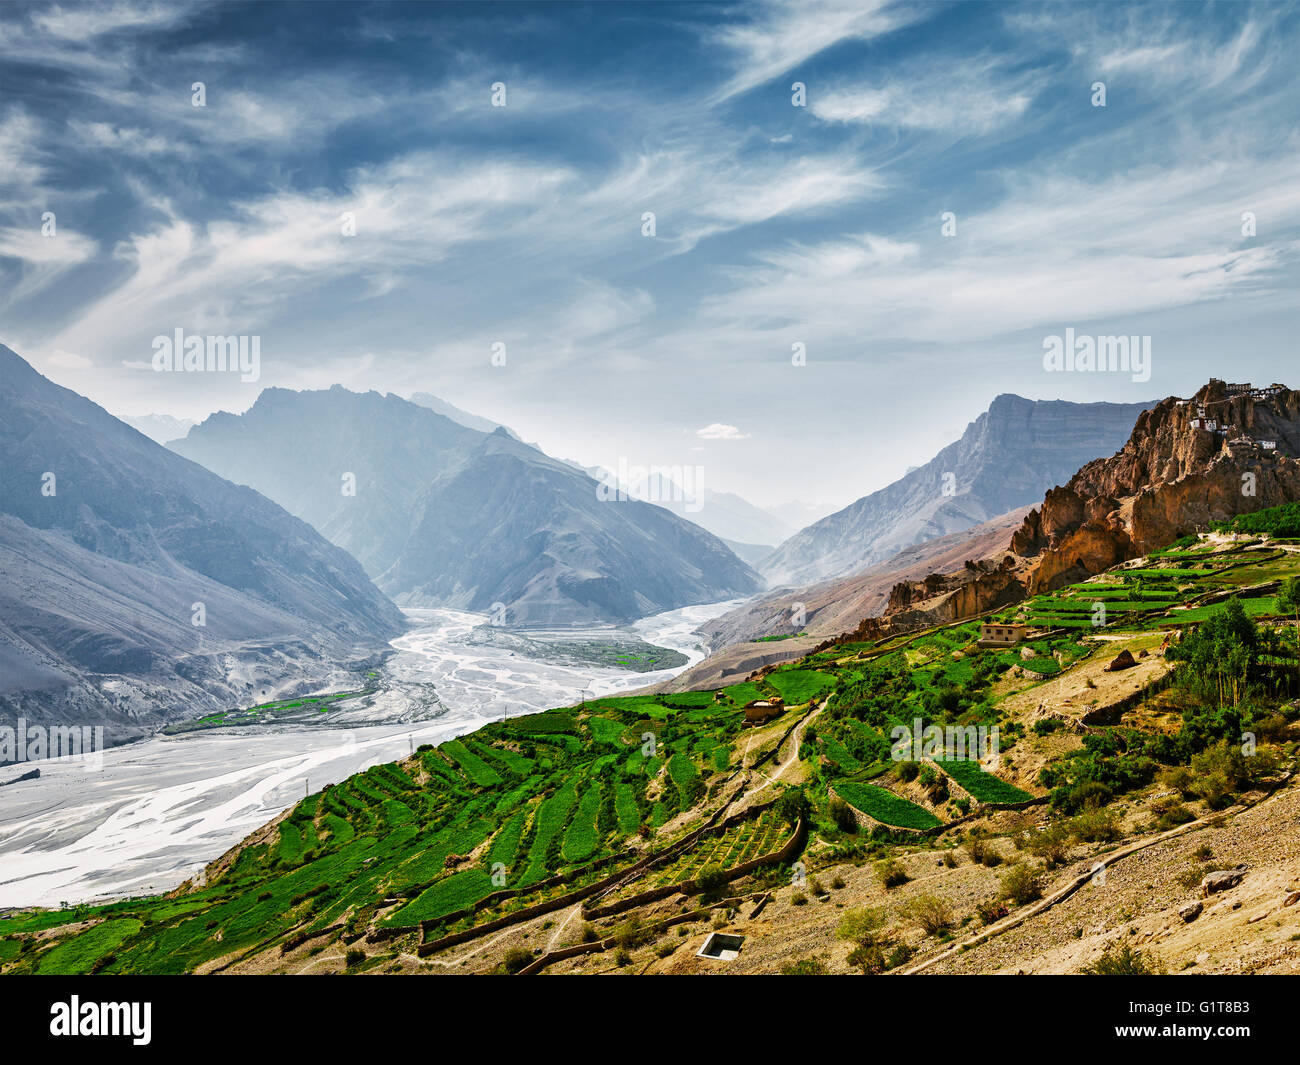 Spiti valley and river in Himalayas - Stock Image